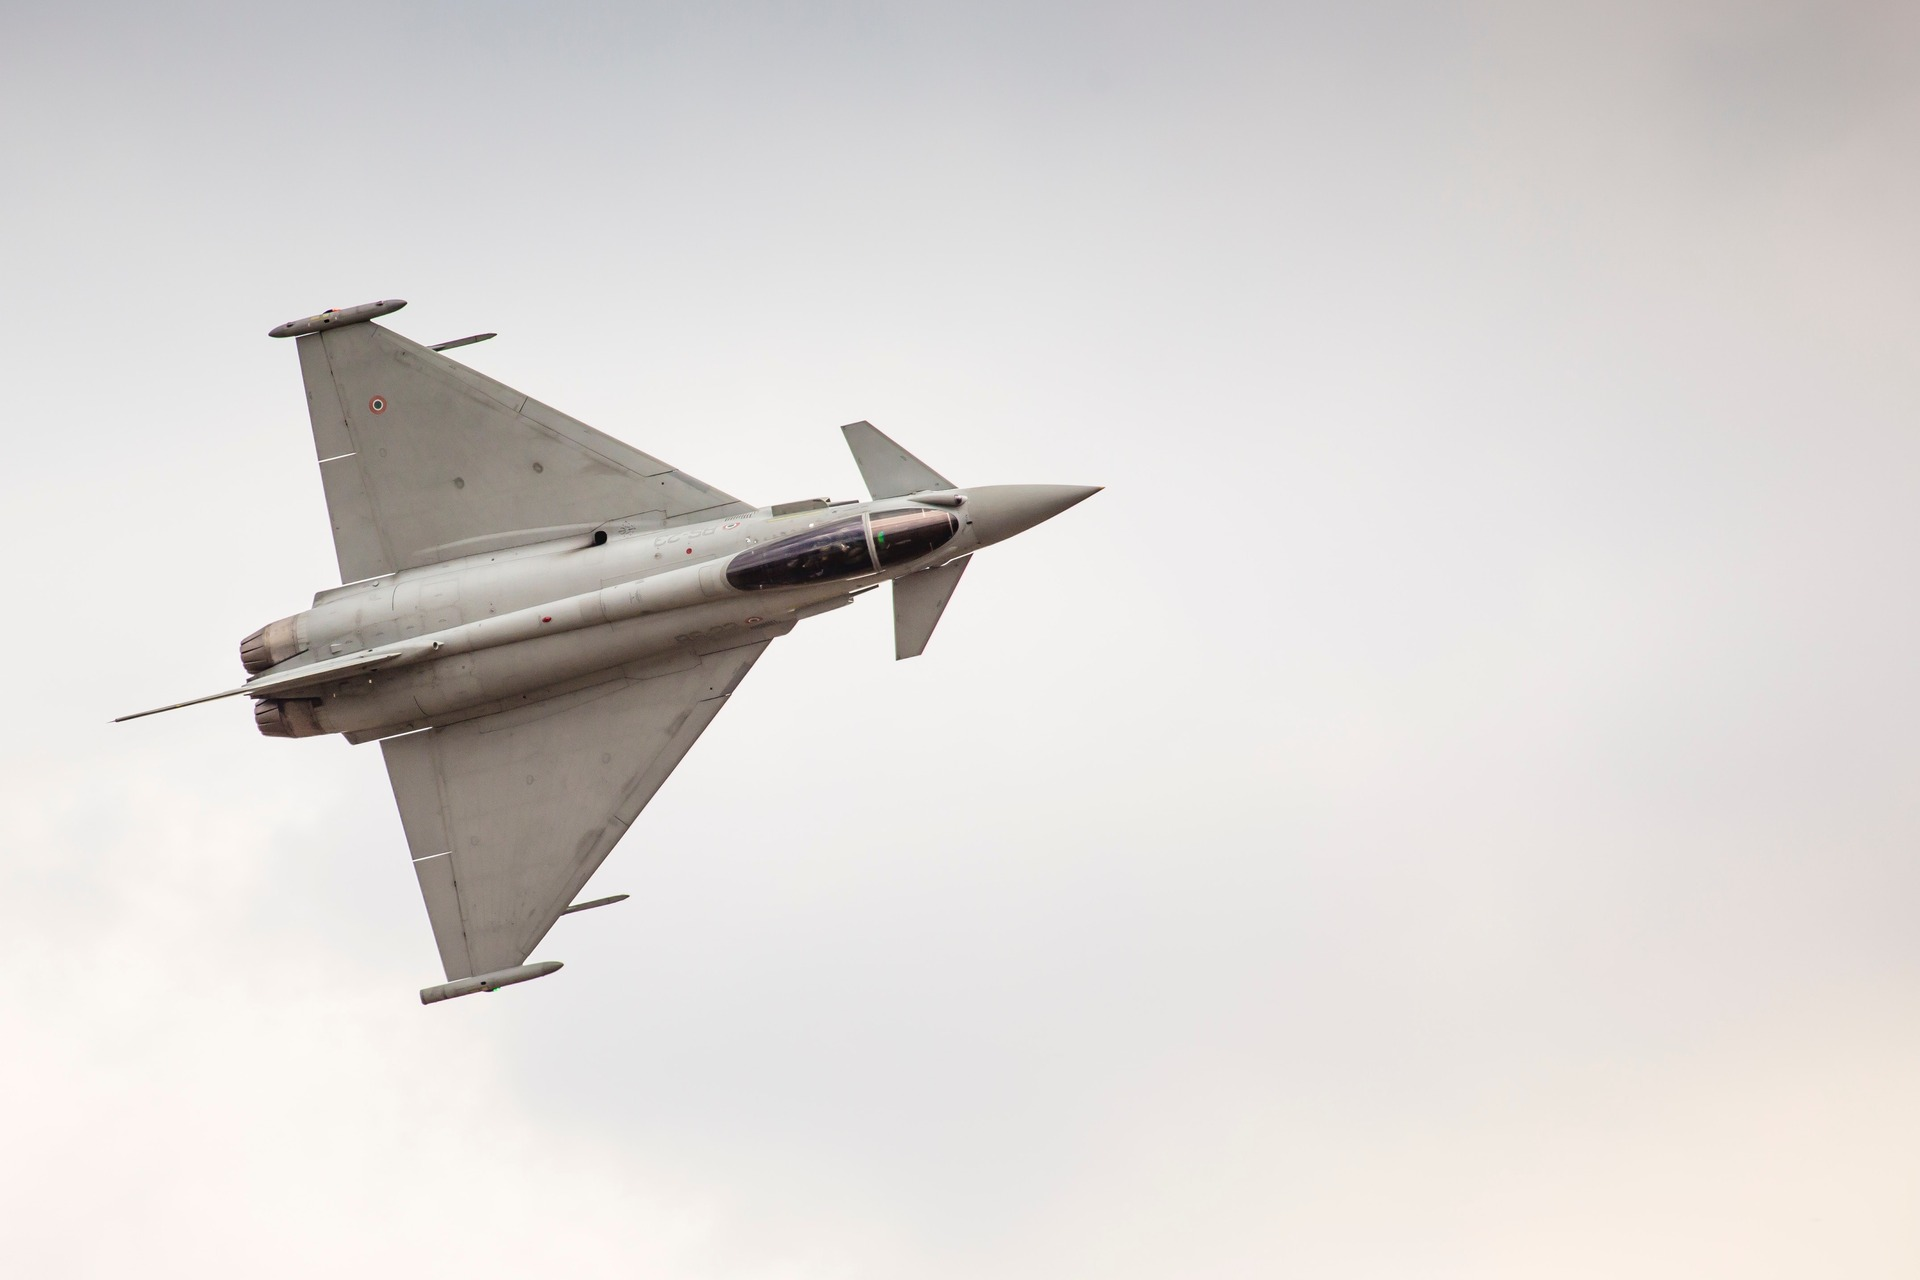 Pilot 'nearly had a heart attack' intercepted by fighter Jets